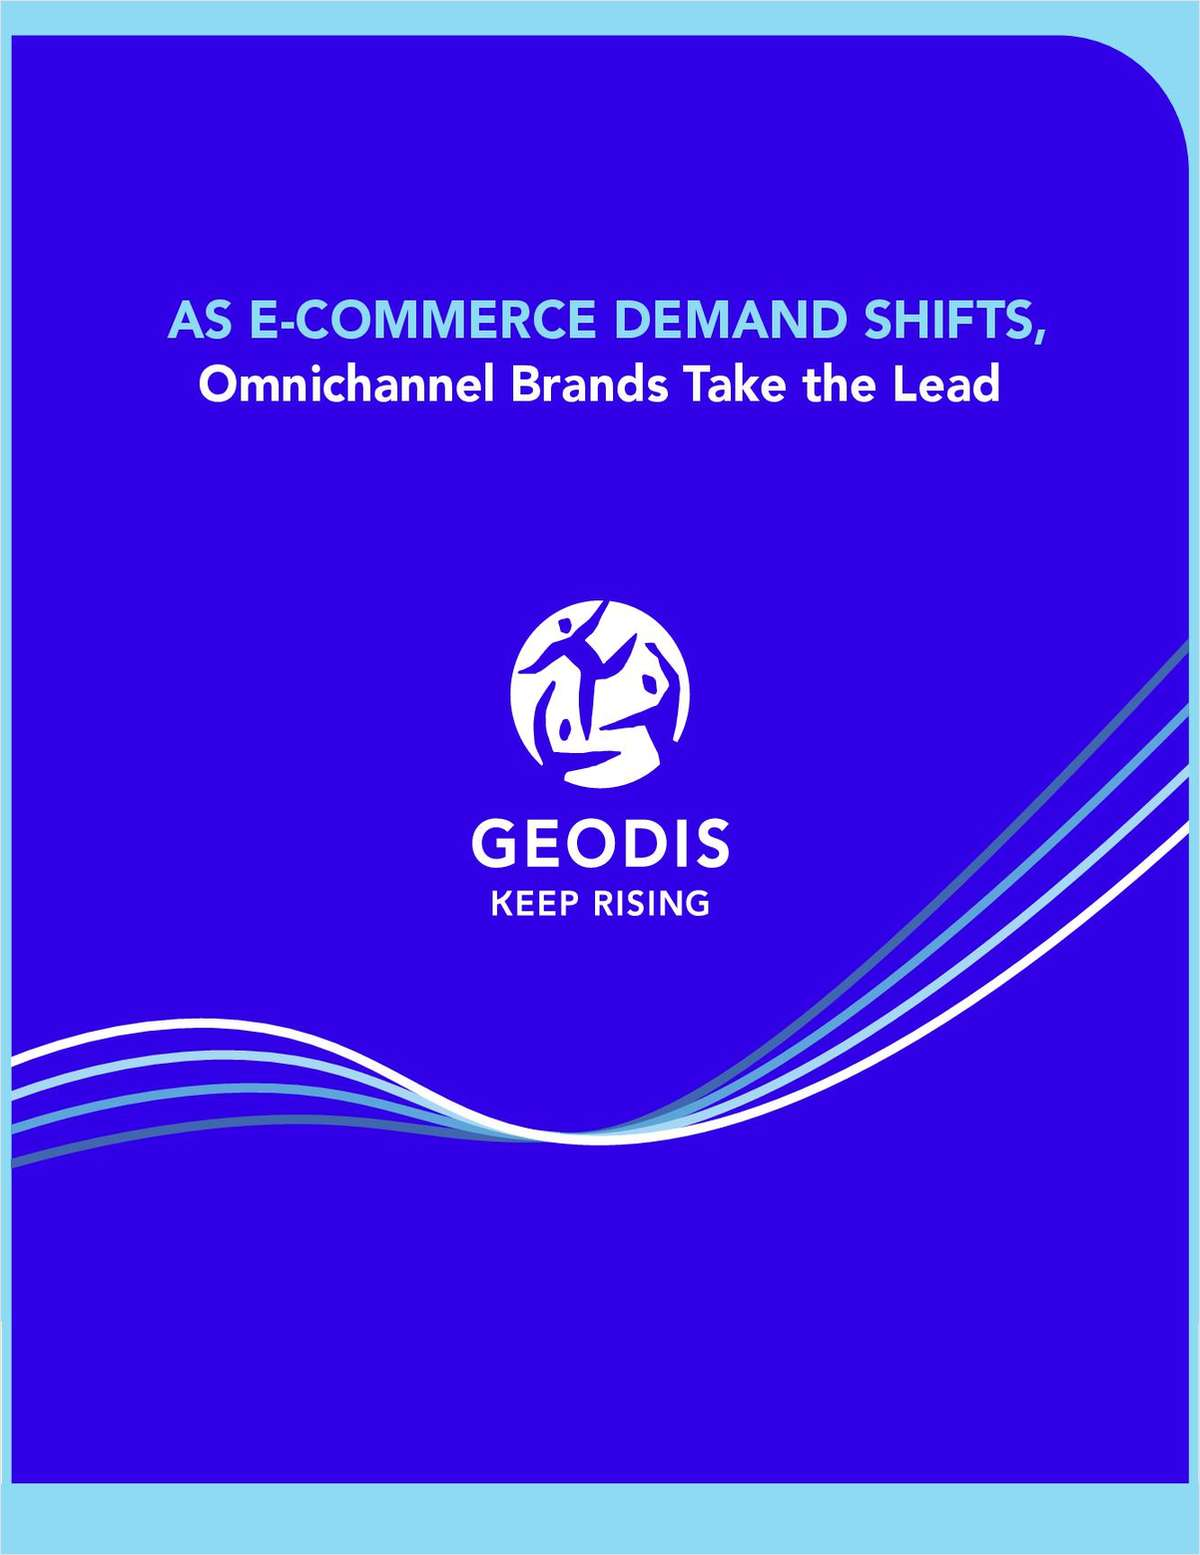 How Omnichannel Brands Take the Lead When E-Commerce Demand Shifts